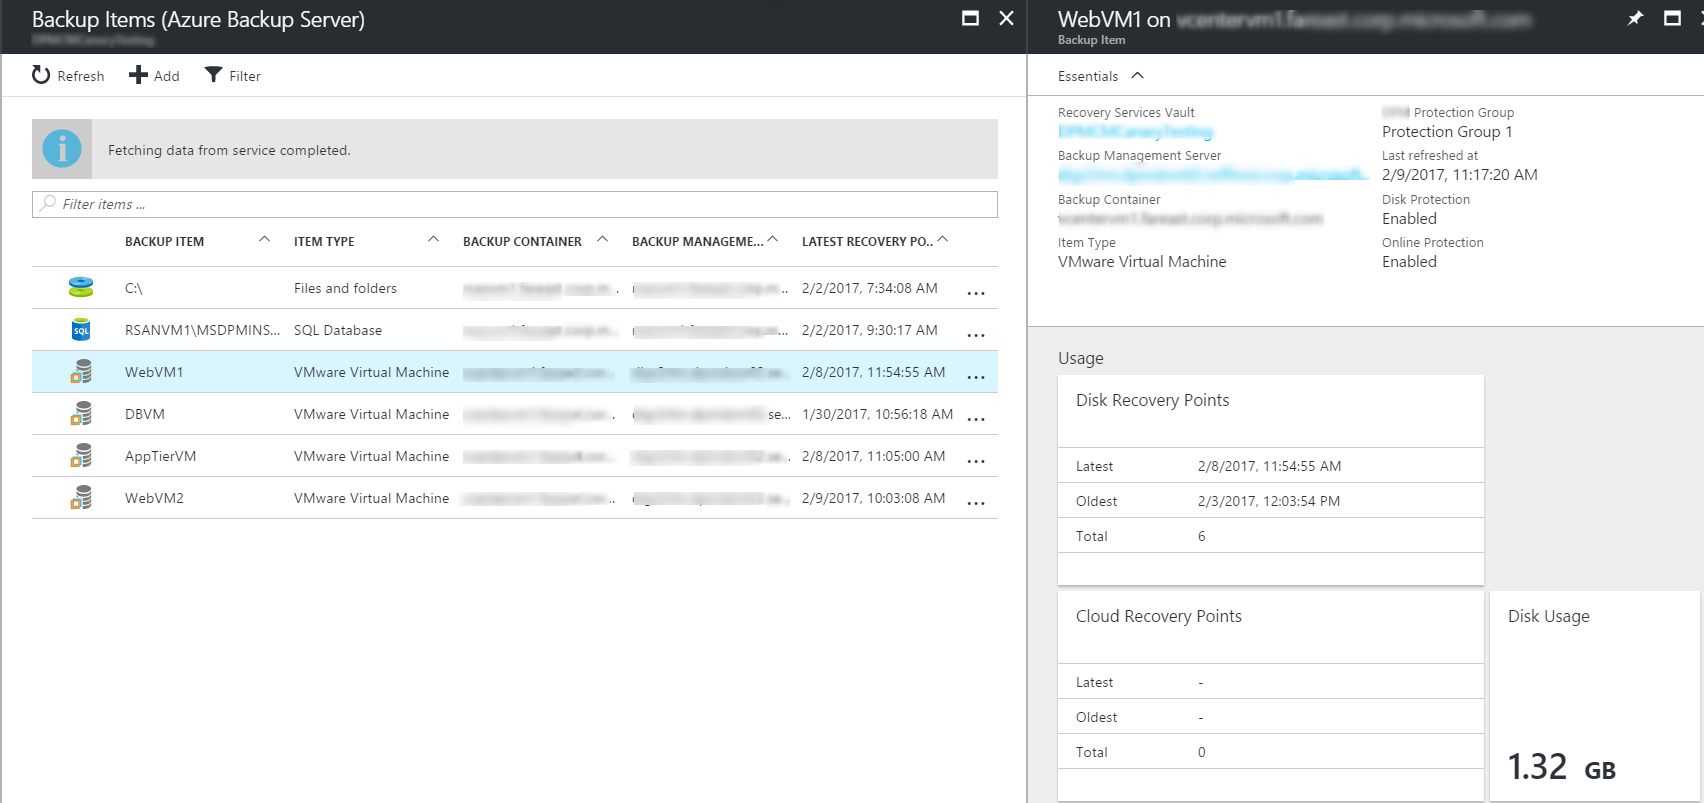 Azure Backup Server - central monitoring